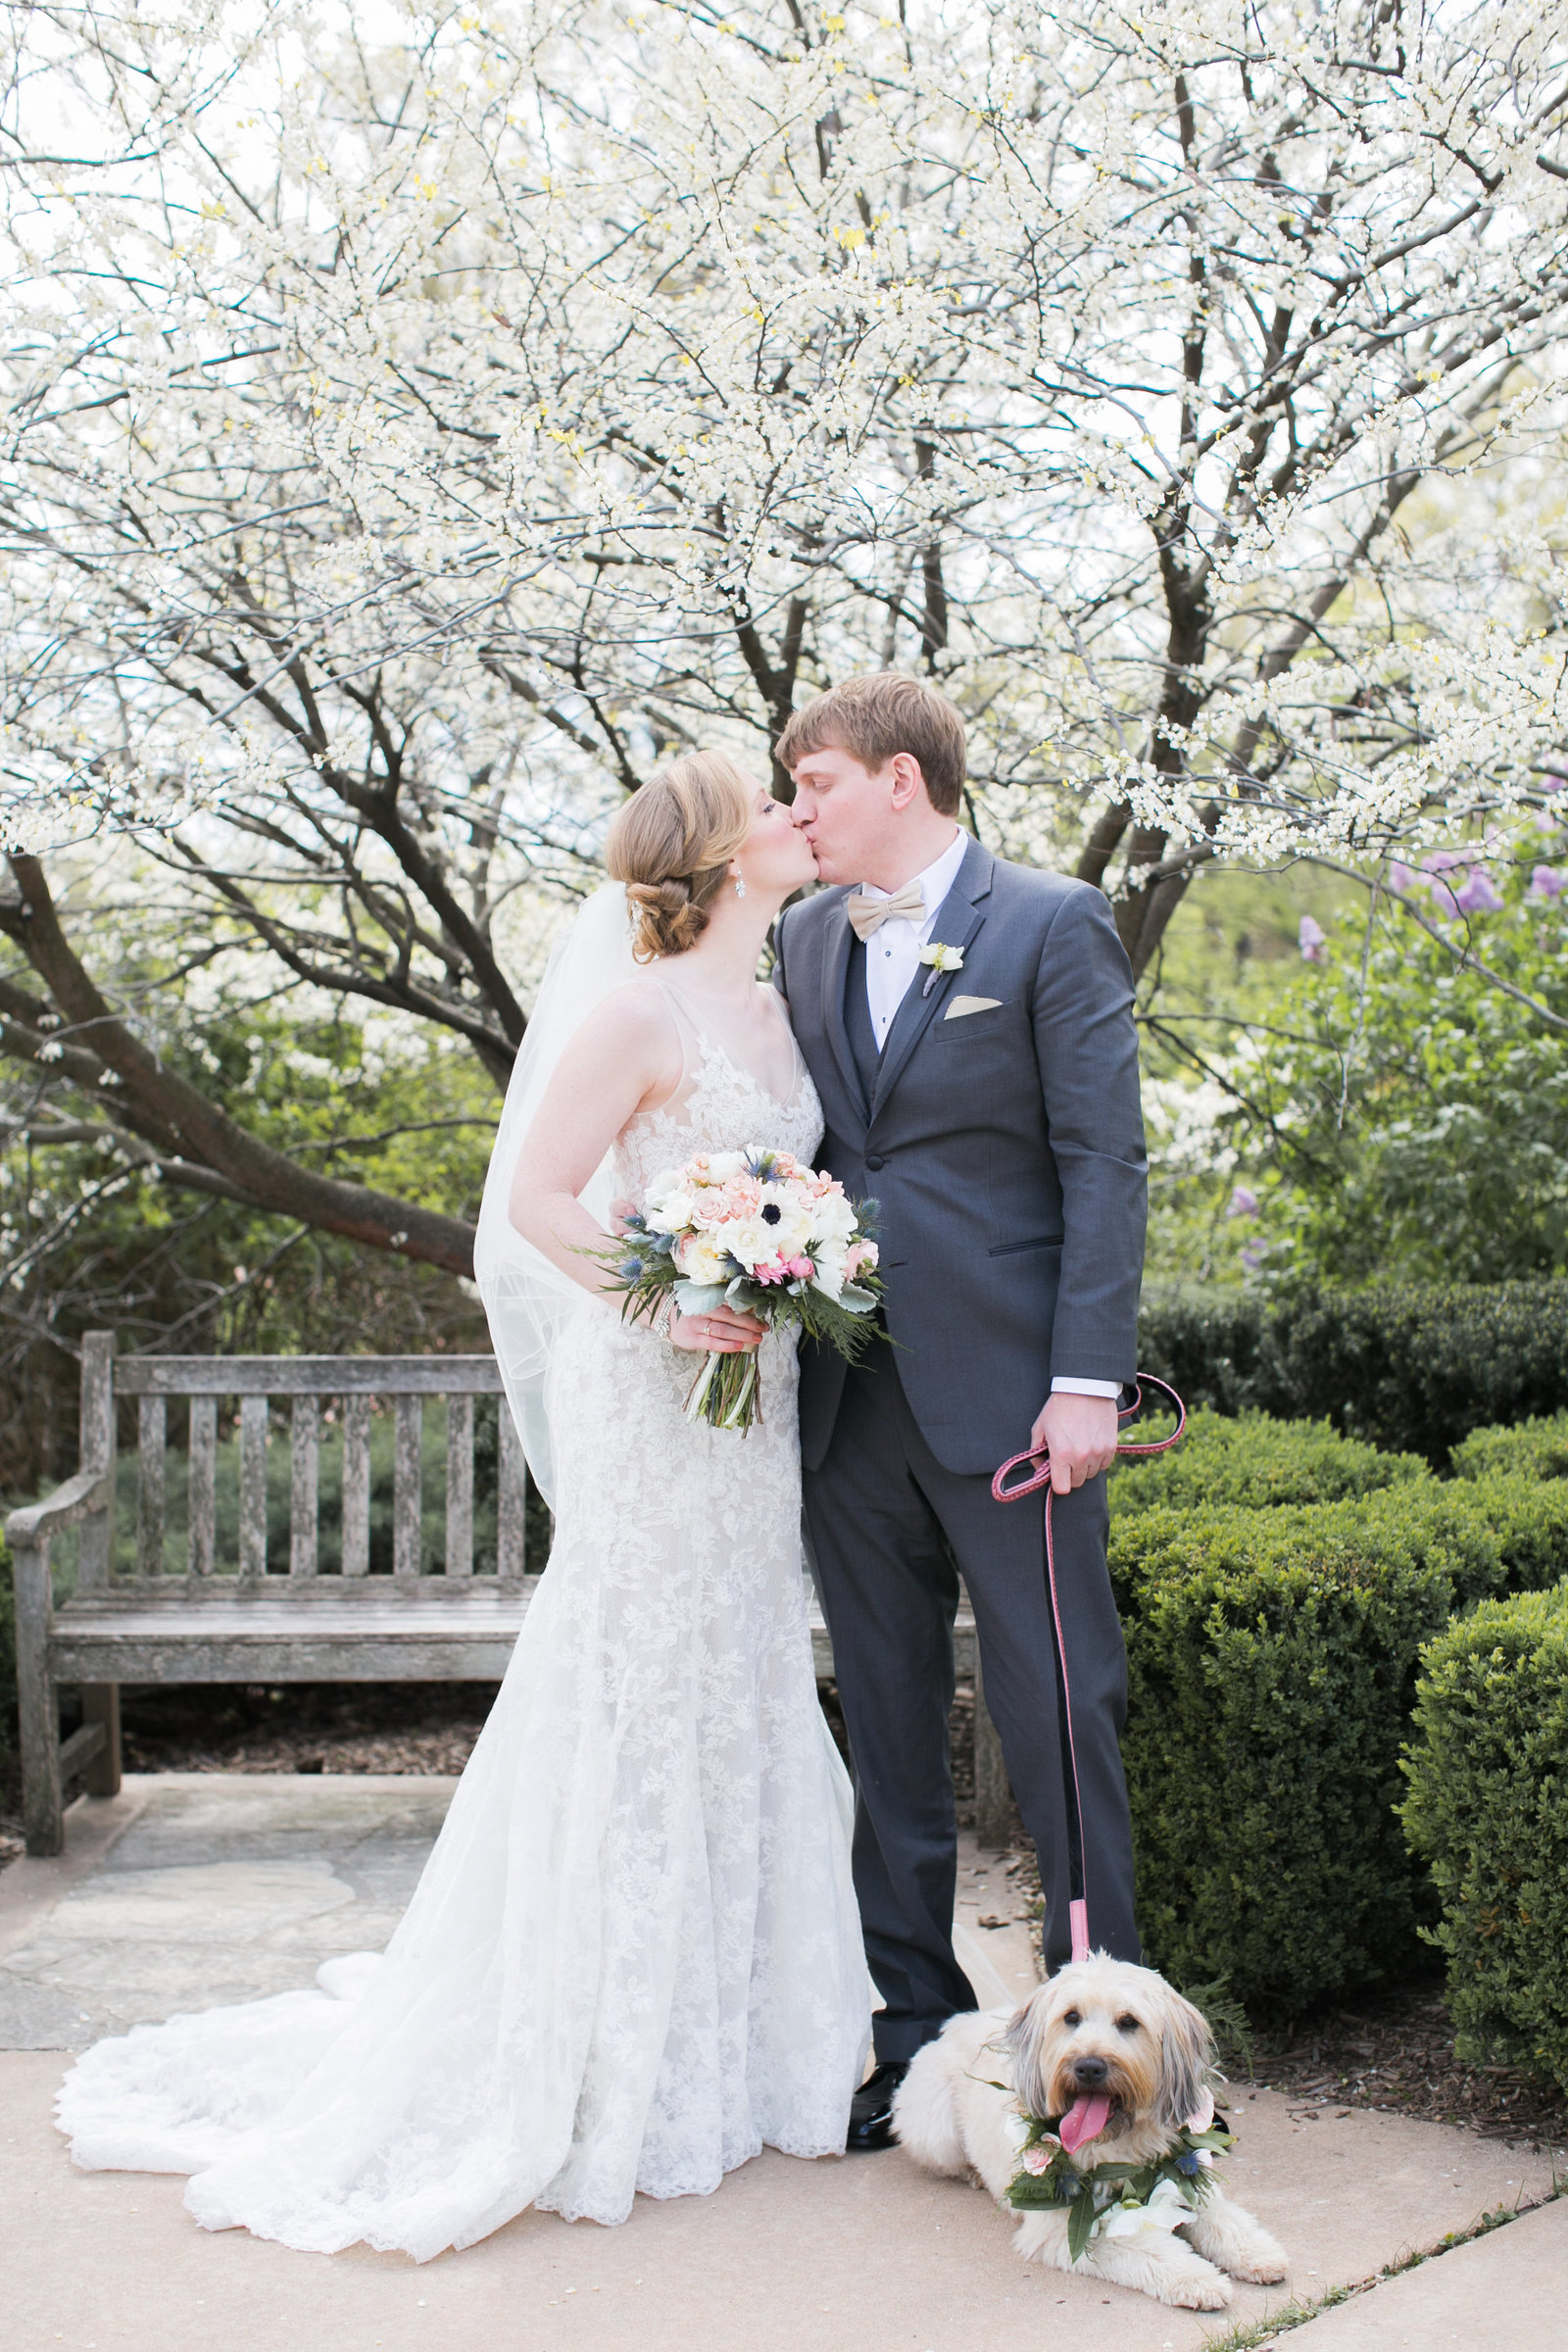 Wedding_Planner_Kansas_City_Madison_Sanders_Events_Brass_on_Baltimore_Spring_Loose_Park_Photos-199